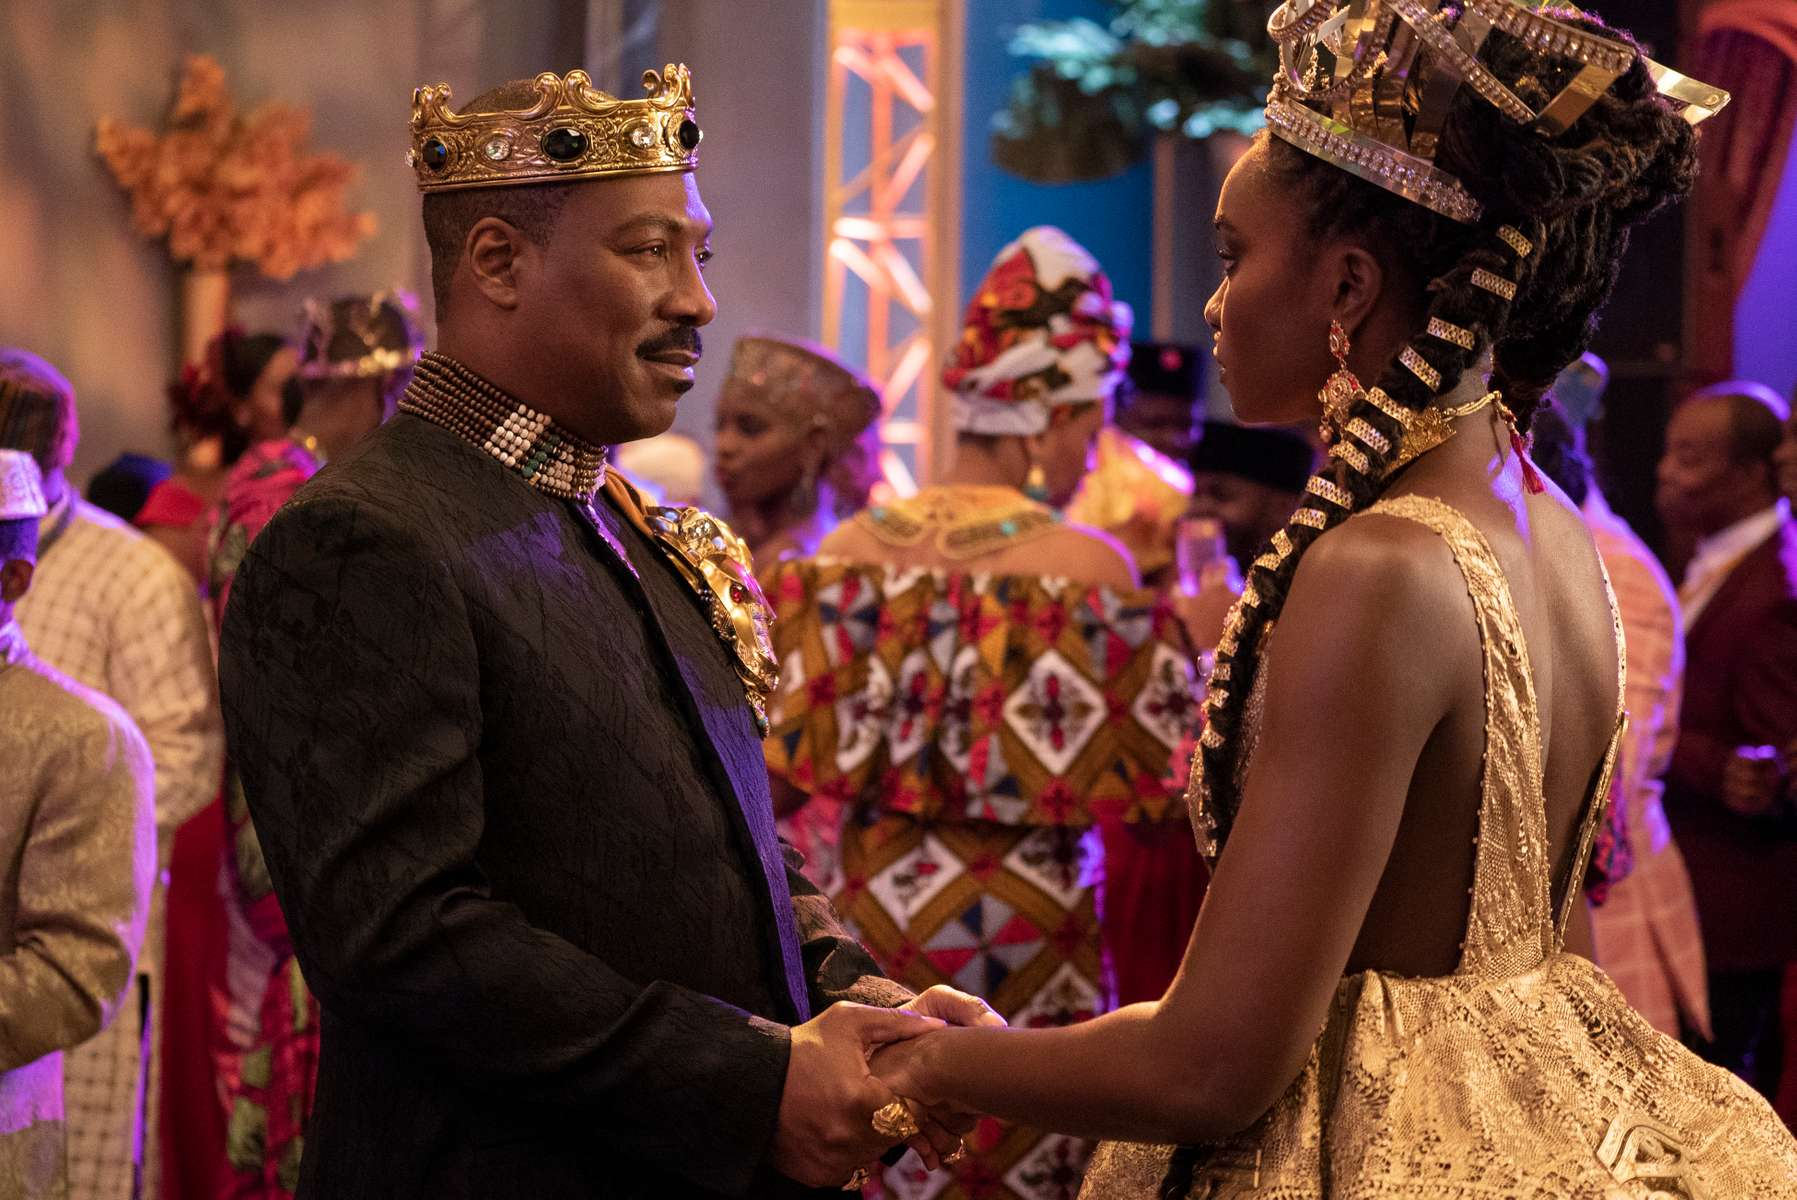 Eddie Murphy and KiKi Layne star in COMING 2 AMERICA Photo: Annette Brown© 2020 Paramount Pictures